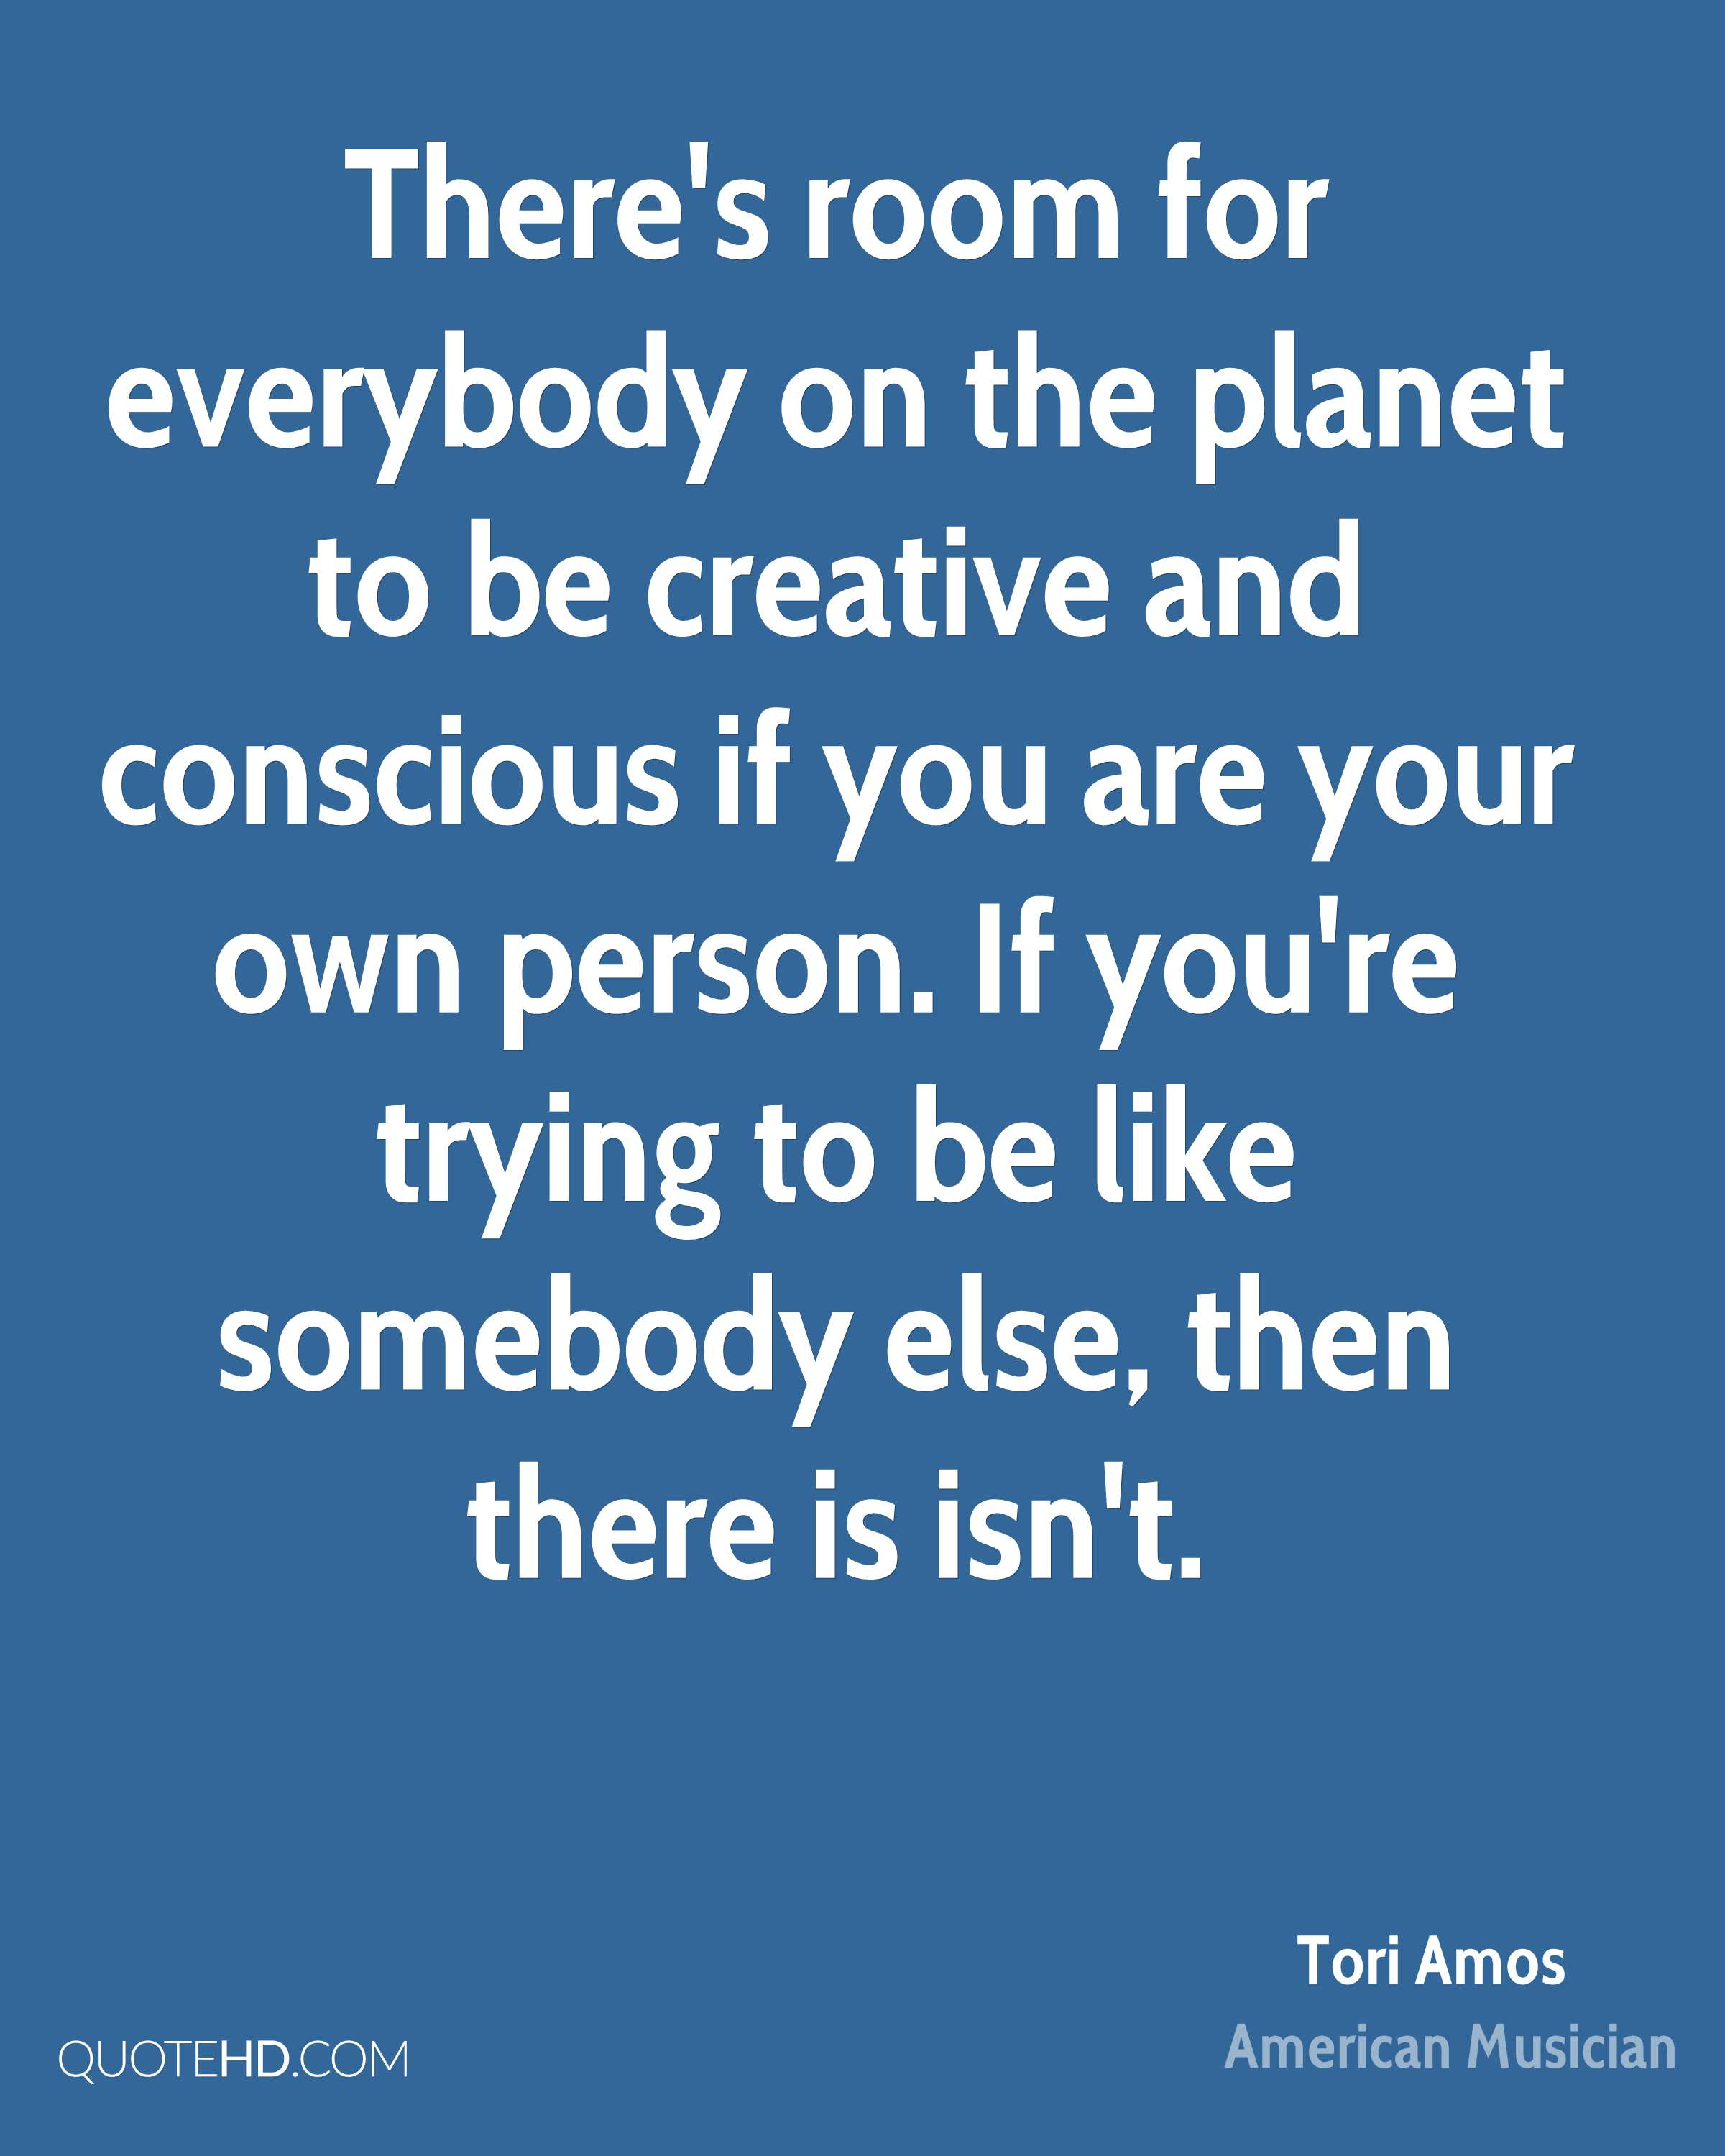 There's room for everybody on the planet to be creative and conscious if you are your own person. If you're trying to be like somebody else, then there is isn't.